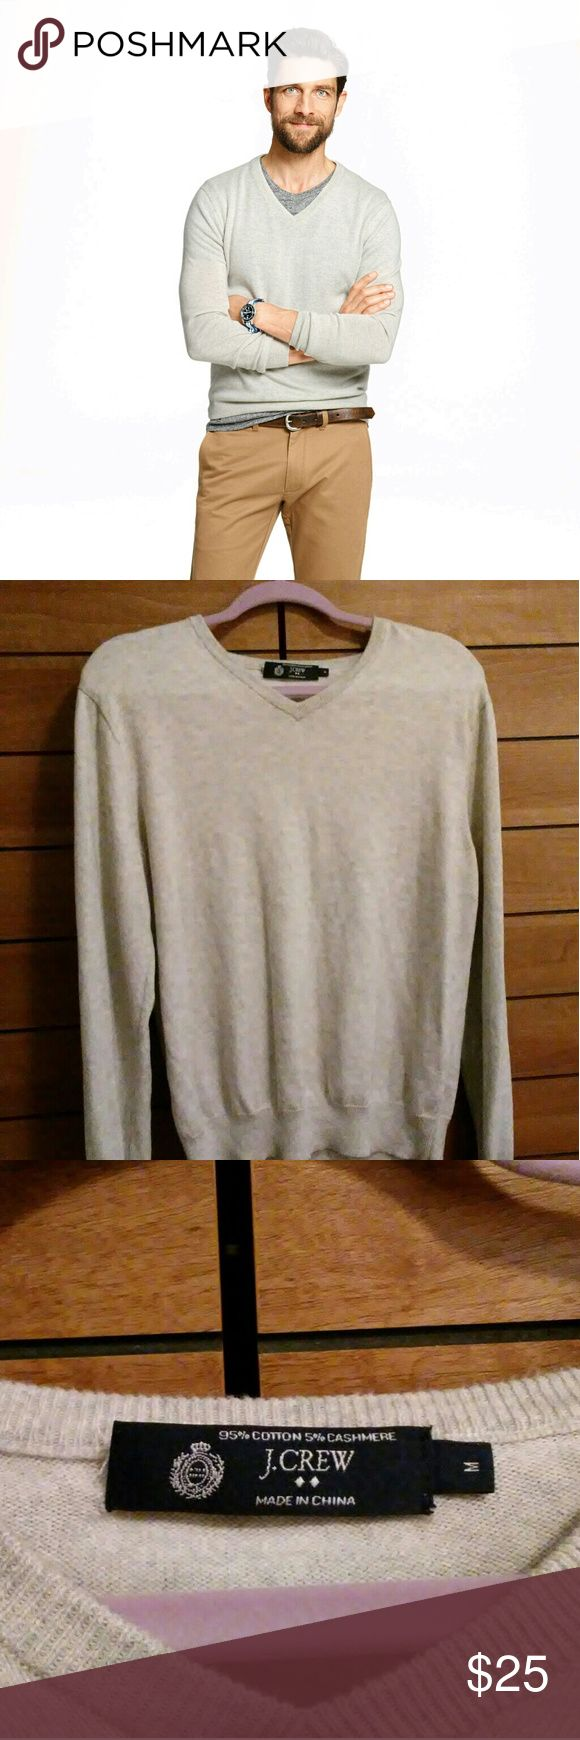 J. Crew Men's V Neck Sweater Excellent condition J. Crew Men's sweater.  95% cotton with 5% cashmere gives it a soft touch.   No stains, holes or pilling. J. Crew Sweaters V-Neck